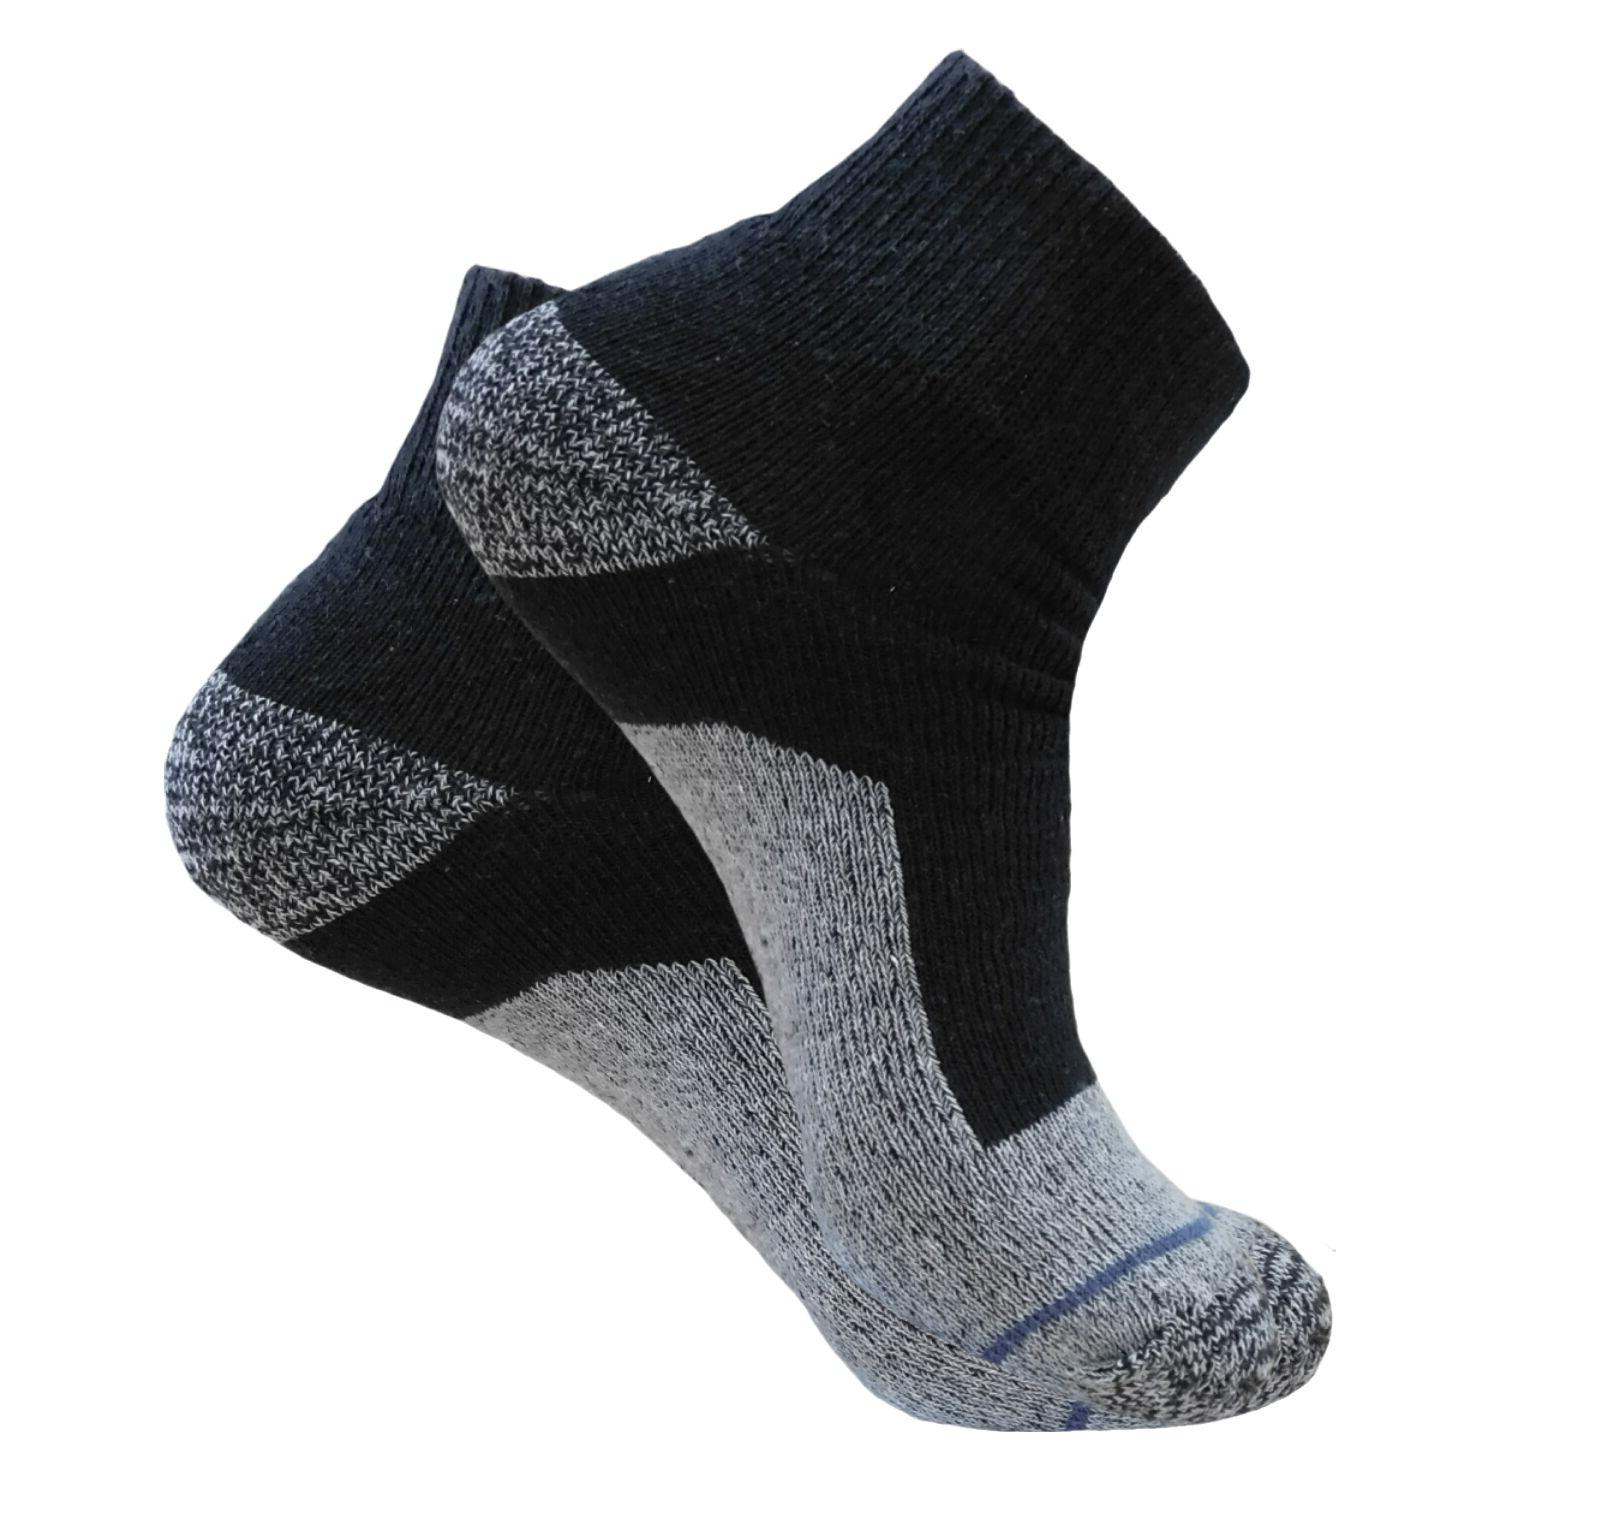 4 ANKLE QUALITY HEAVY COTTON 10-13